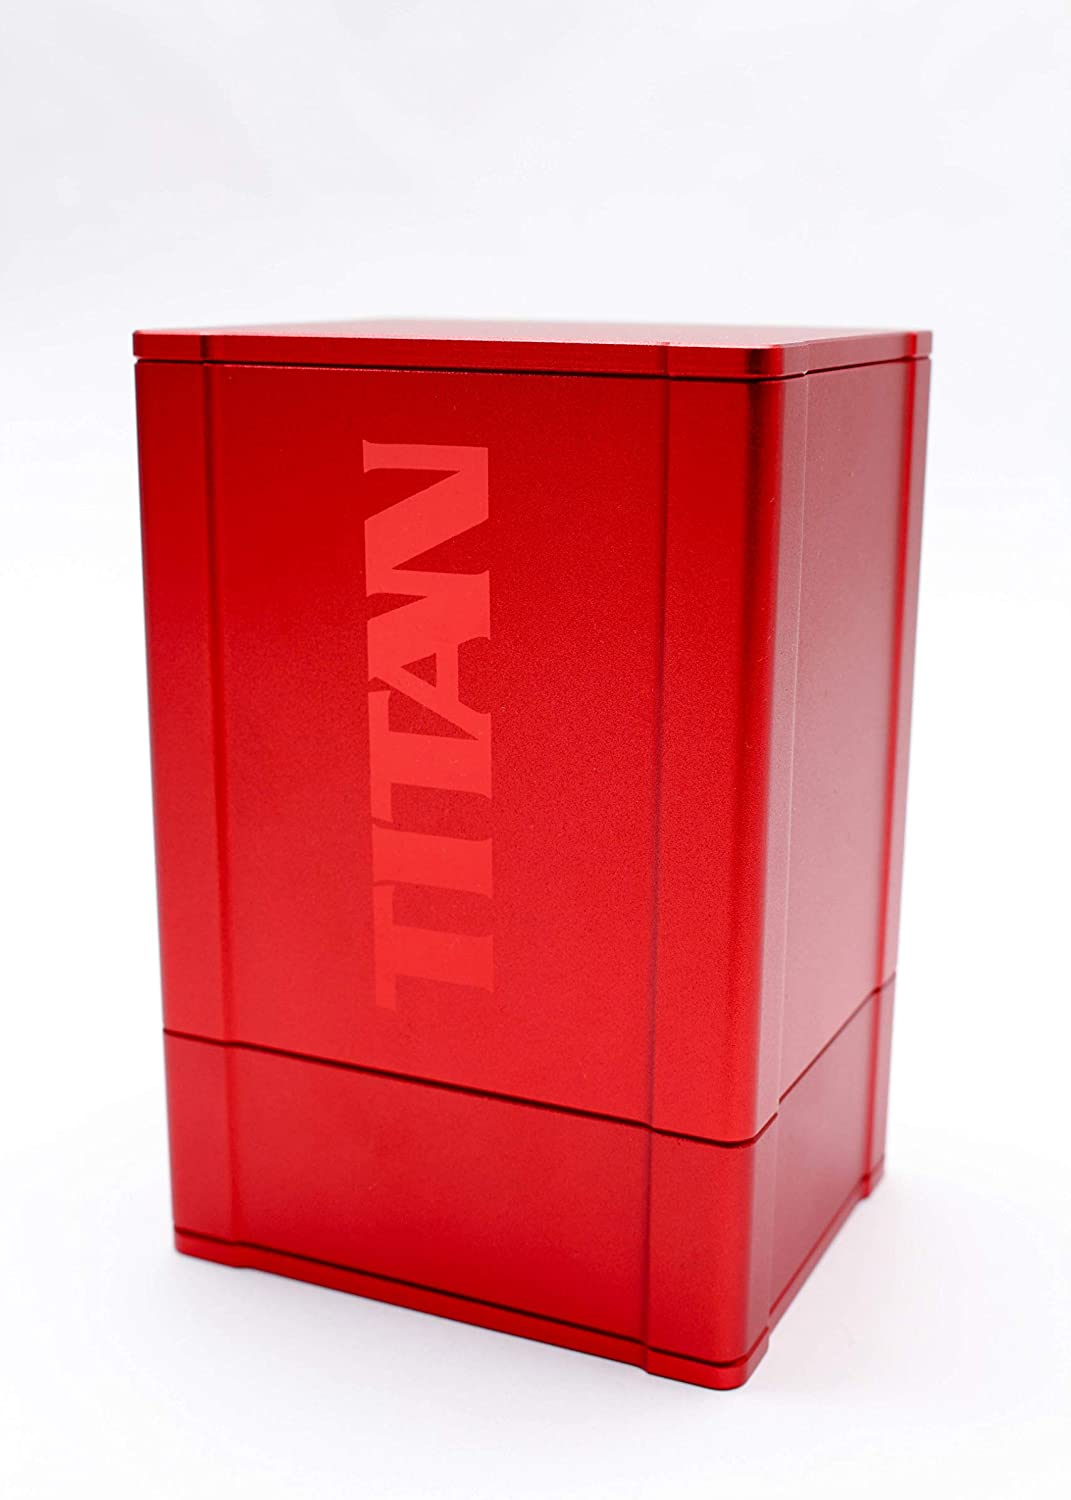 Red Satin Titan Solid Box Gods Premium High Strength Deck Box Case Protector